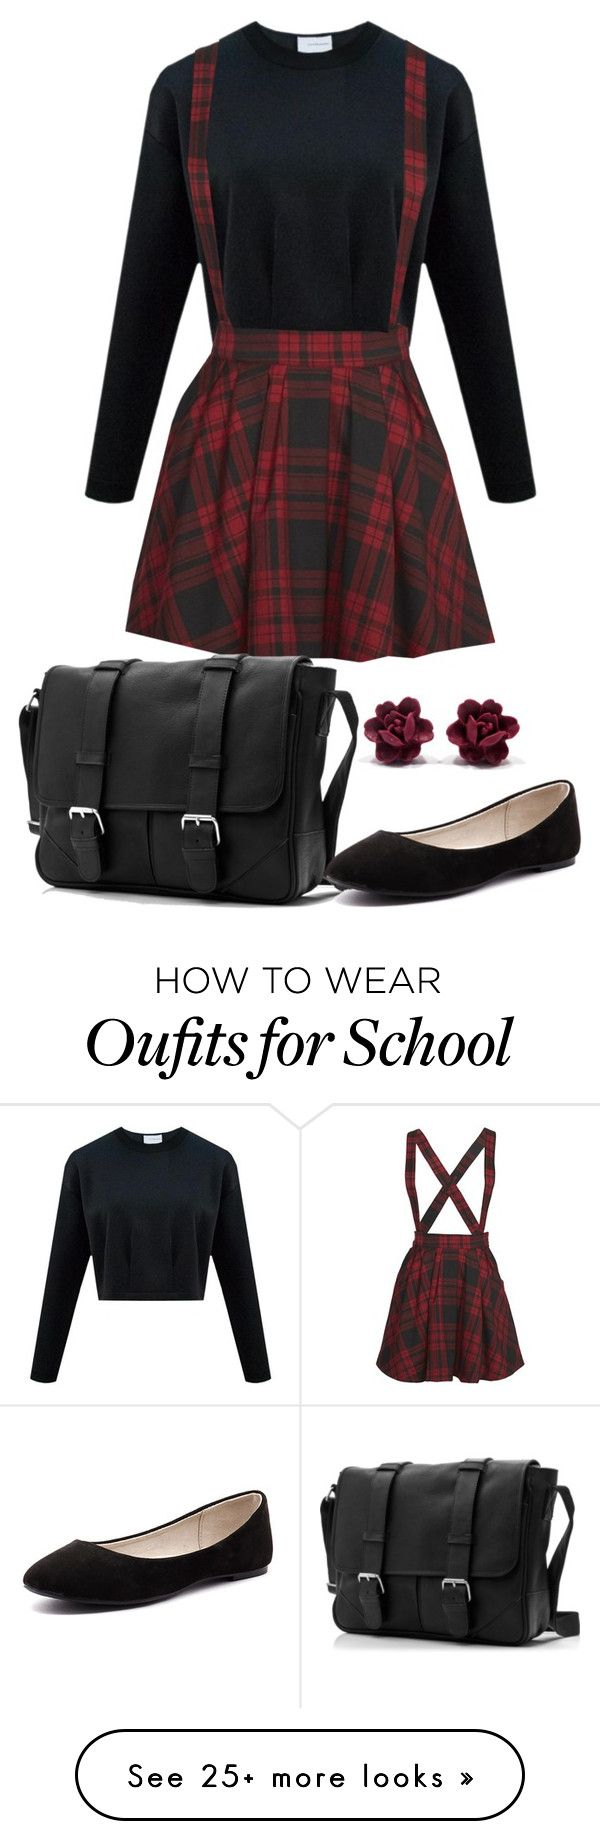 """<3"" by gracerose03 on Polyvore featuring Mini Cream, Verali, women's clothing, women, female, woman, misses and juniors"